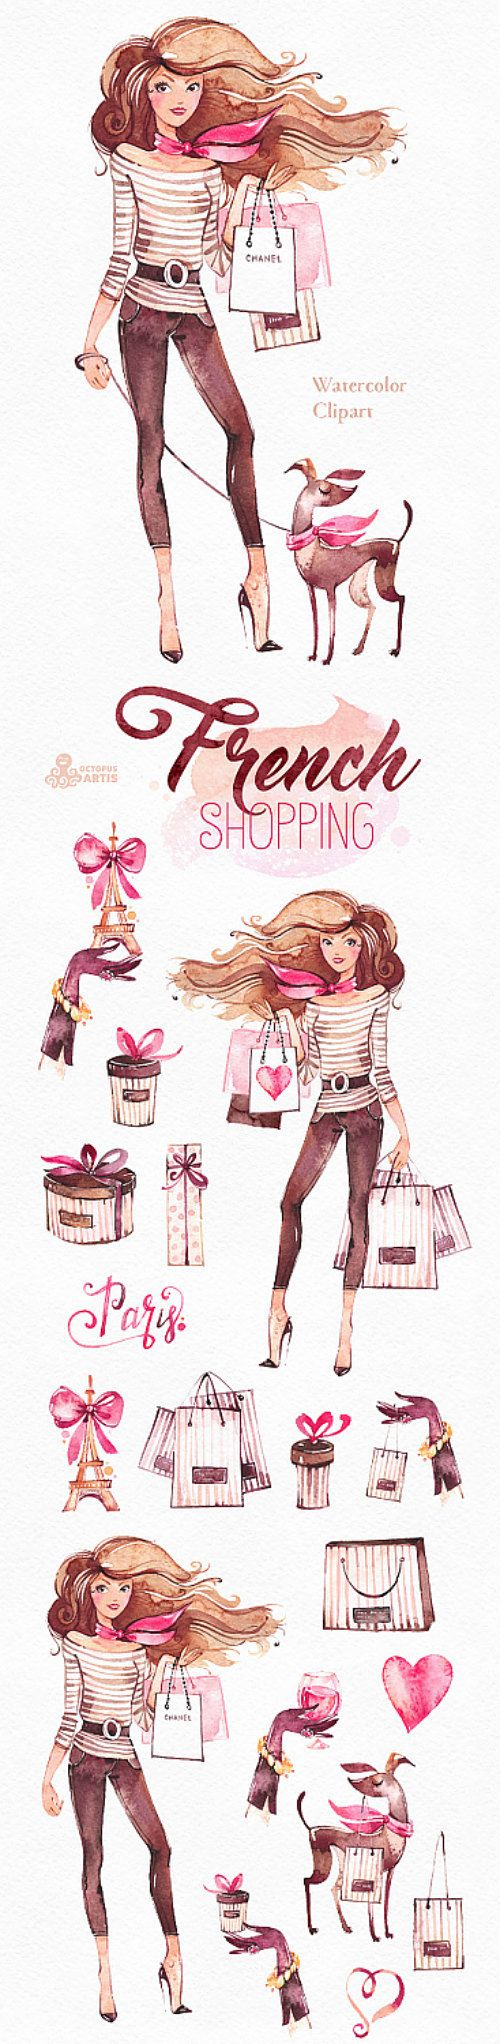 French Shopping Watercolor Fashion Clipart Shoes By OctopusArtis